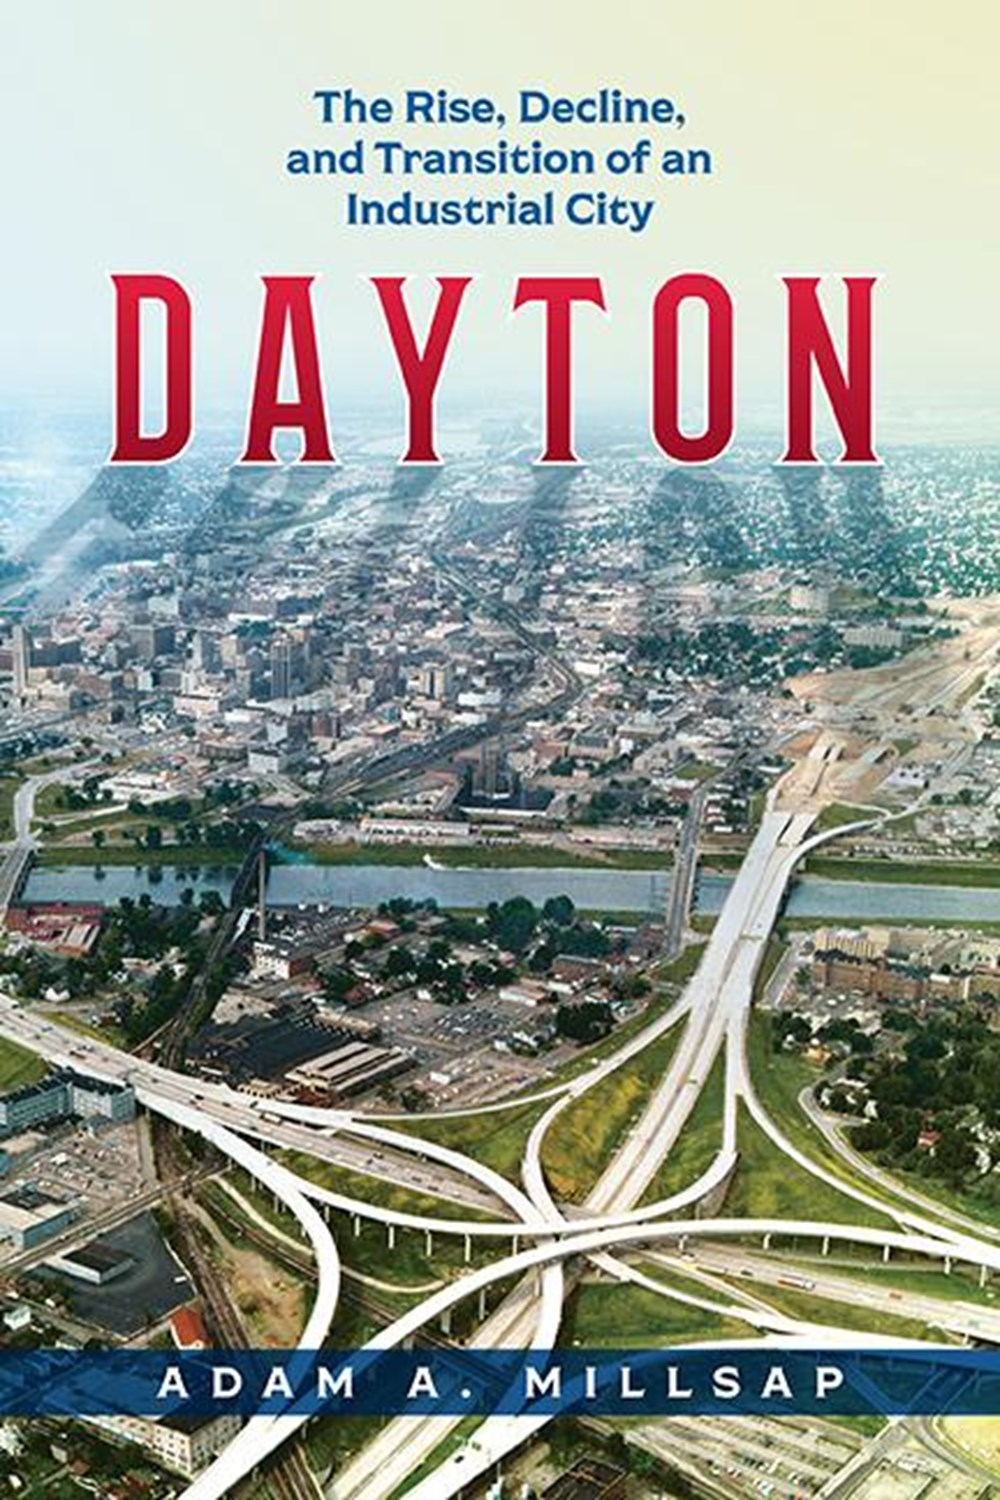 Dayton The Rise, Decline, and Transition of an Industrial City